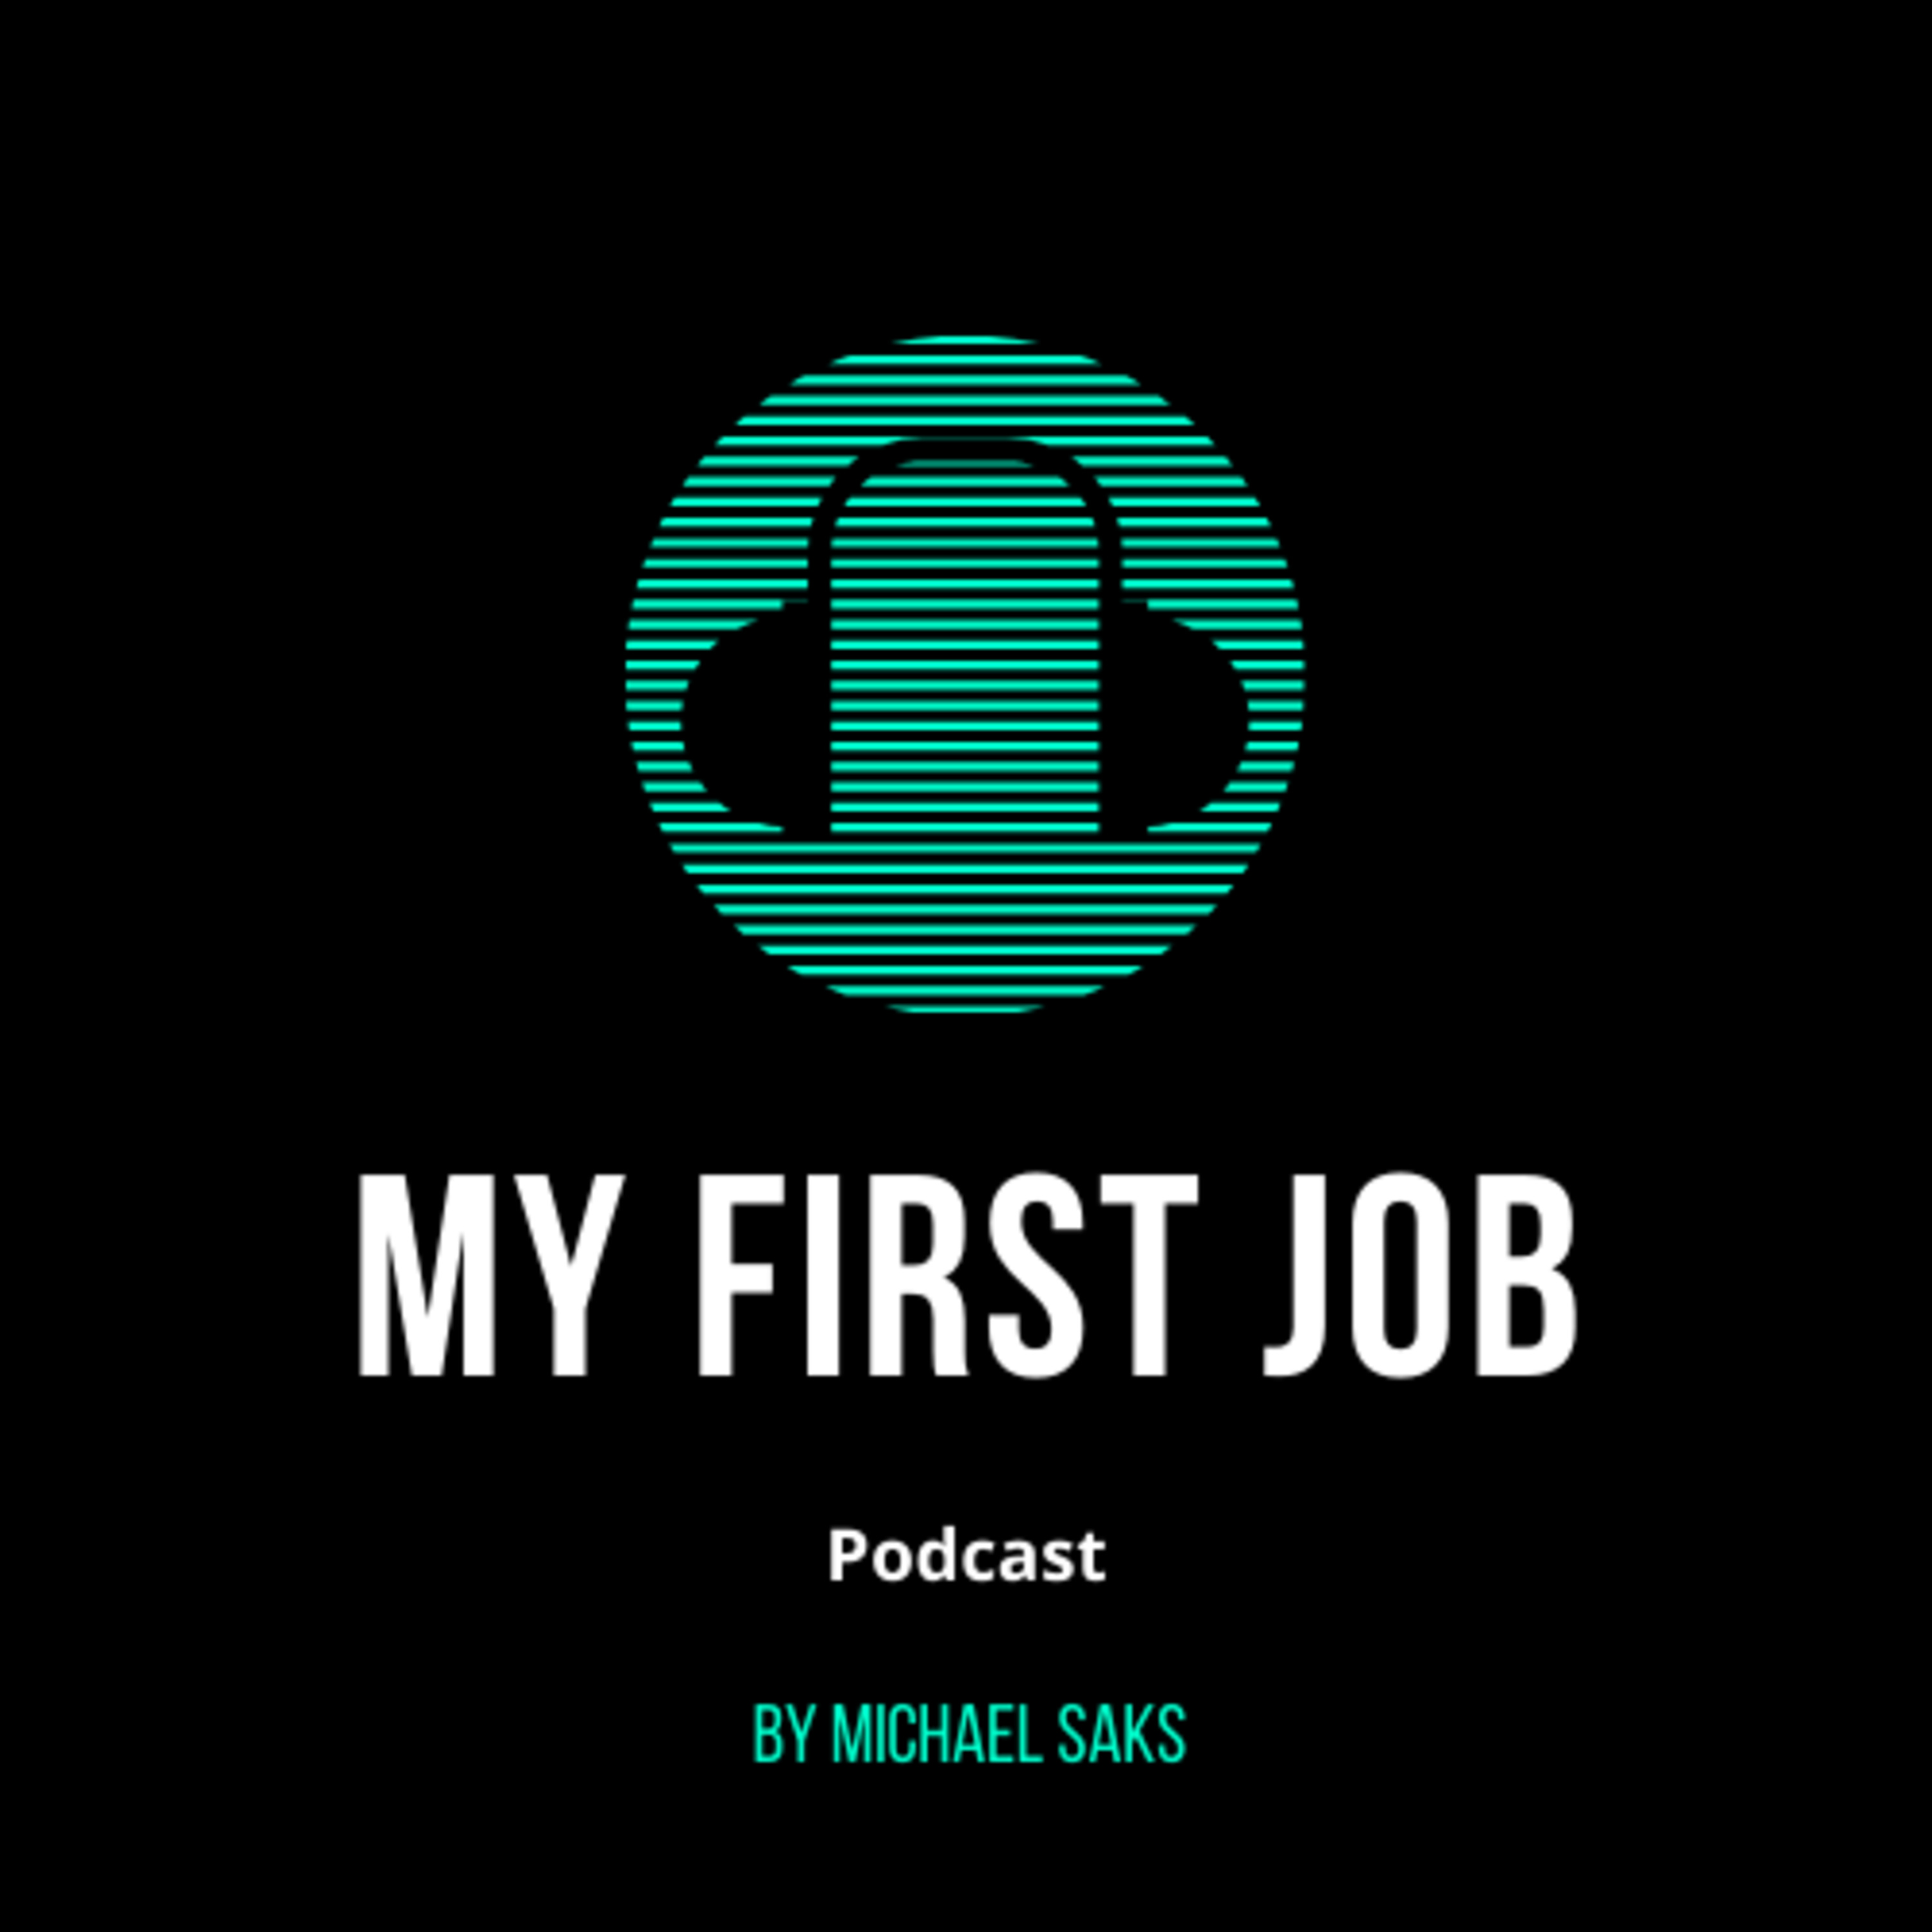 My First Job Podcast Trailer by Michael Saks